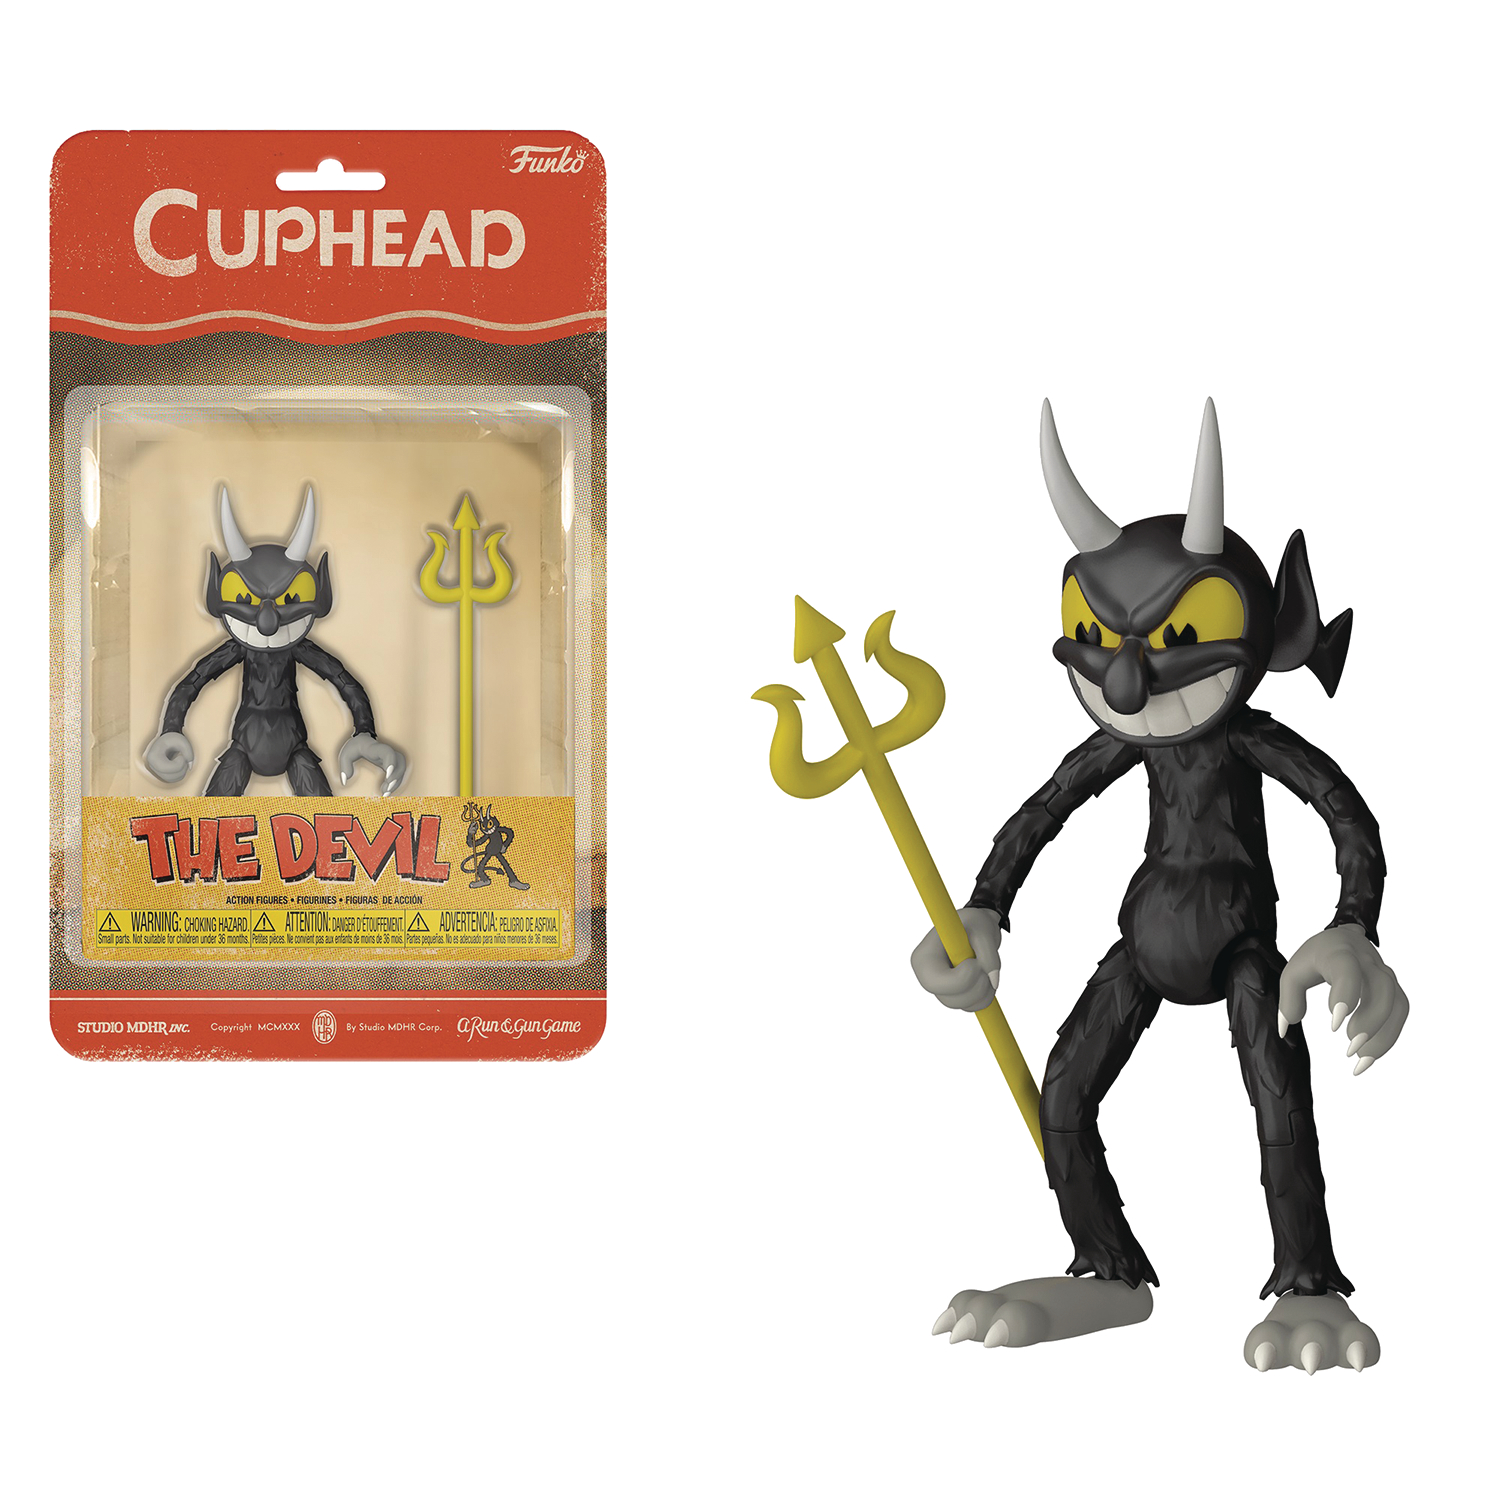 FUNKO CUPHEAD THE DEVIL AF